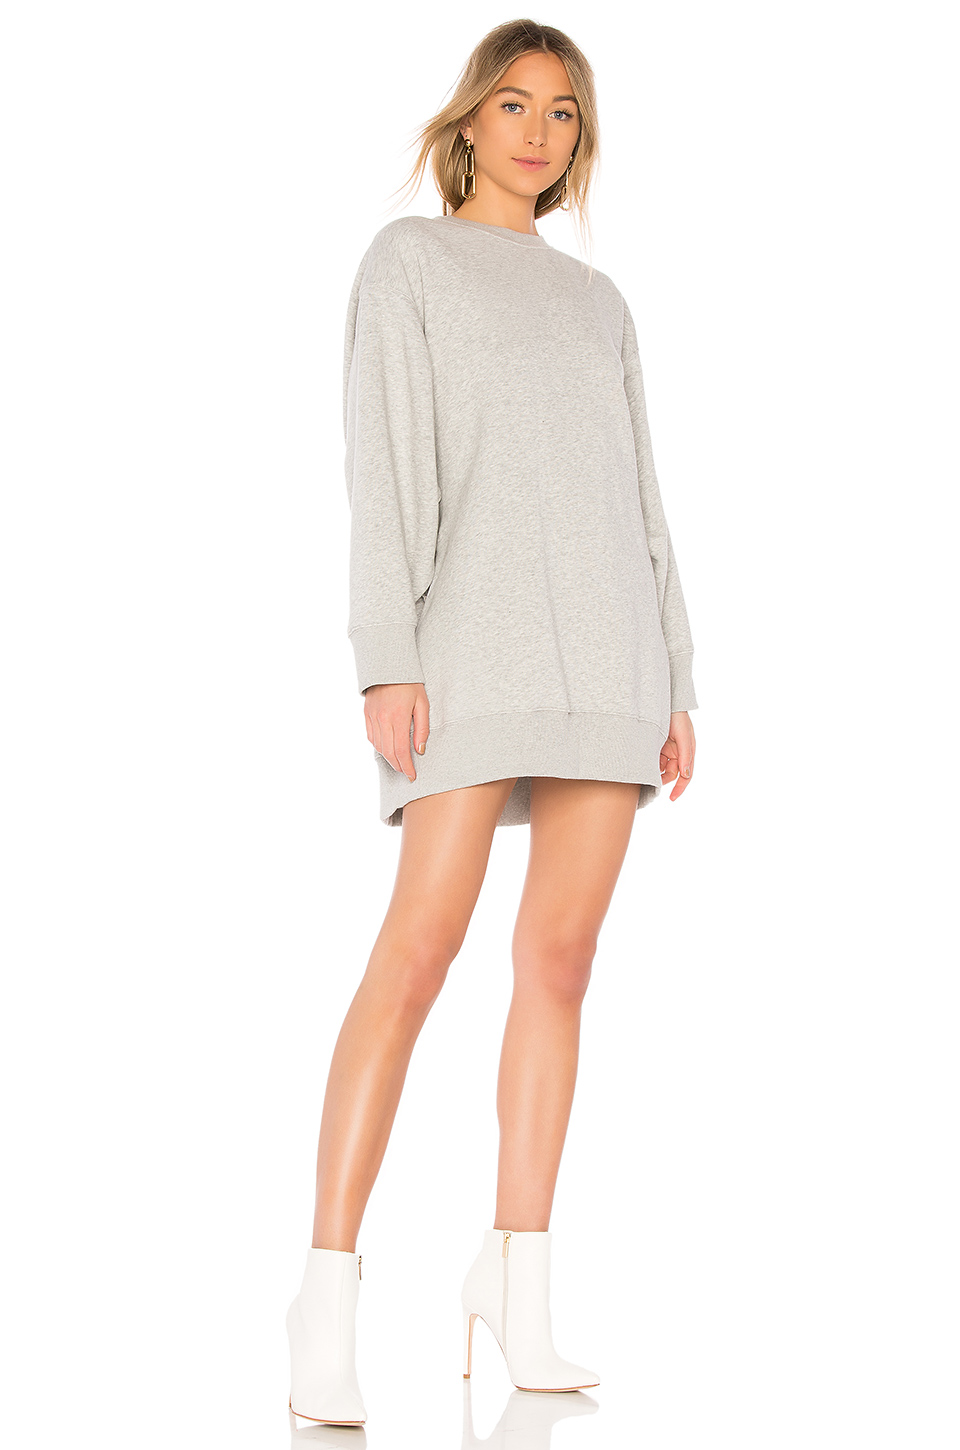 644c0349d79 ... Tommy Hilfiger TOMMY X GIGI Gigi Hadid Open Back LS Sweatshirt Dress ...